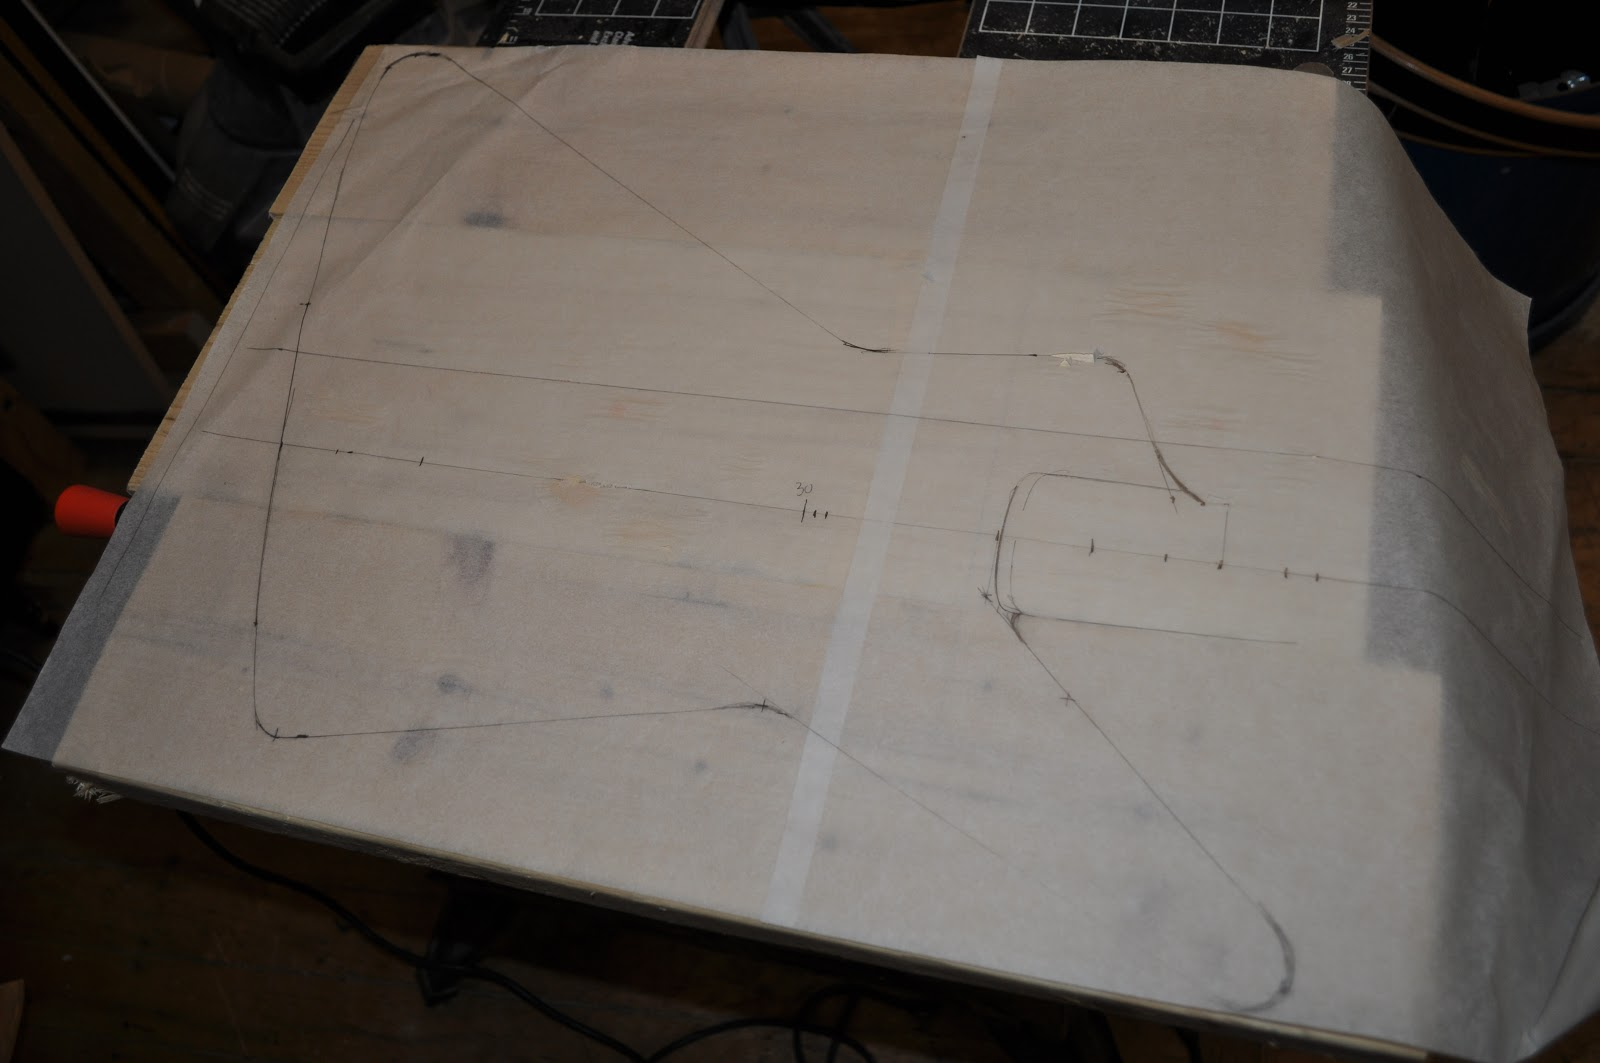 where can i buy tracing paper Find answers to important life and education questions on the tsr forums: where can i buy tracing paper.